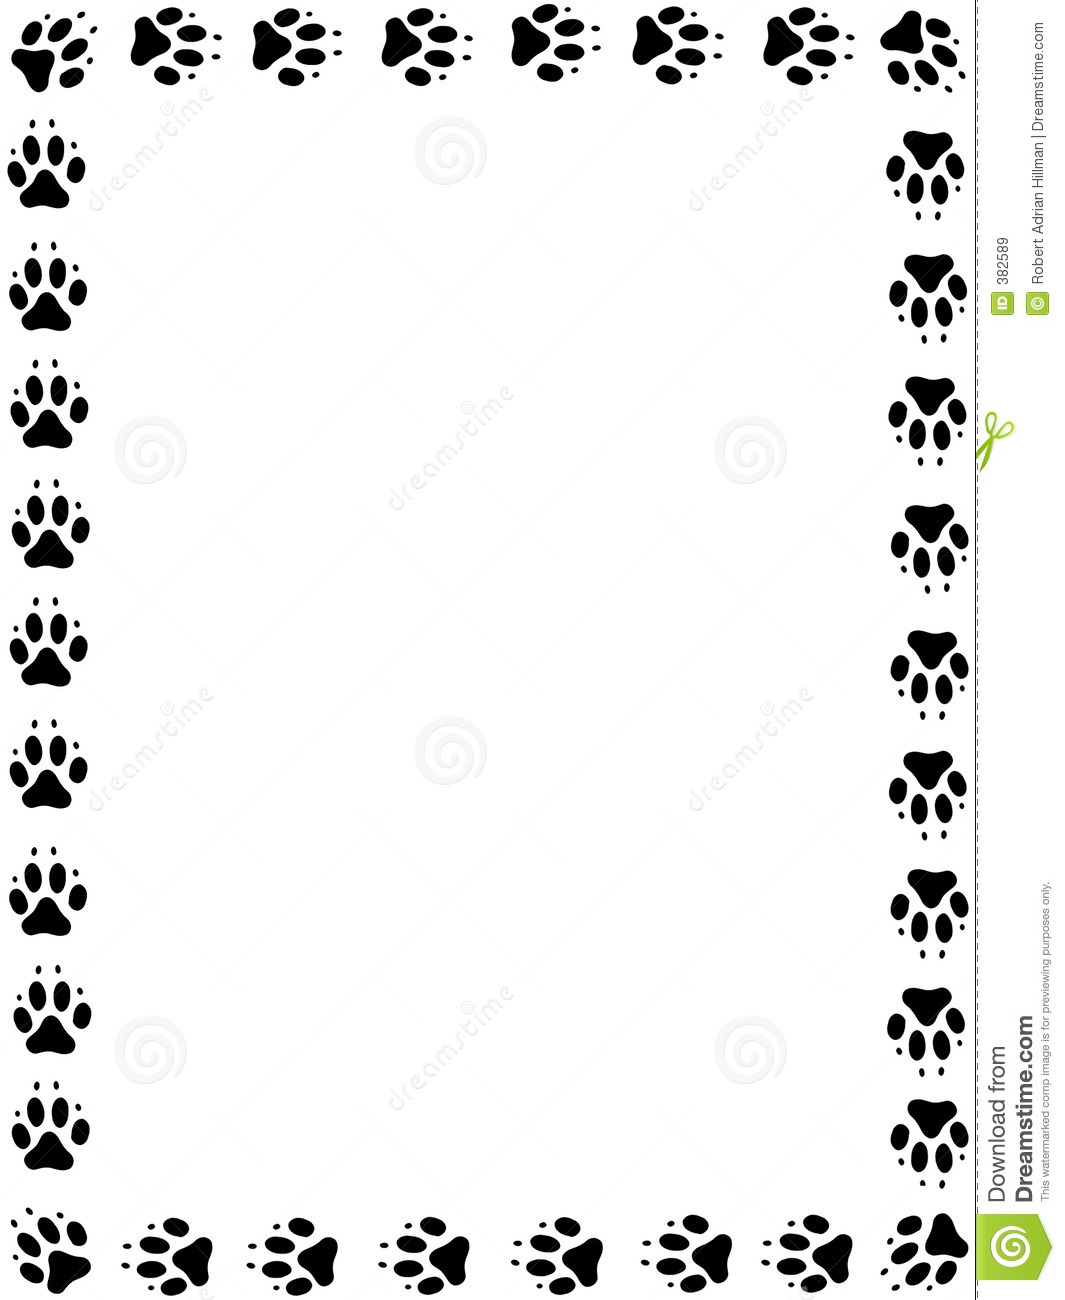 Dog Paw Print Clip Art Free Download Images & Pictures - Becuo